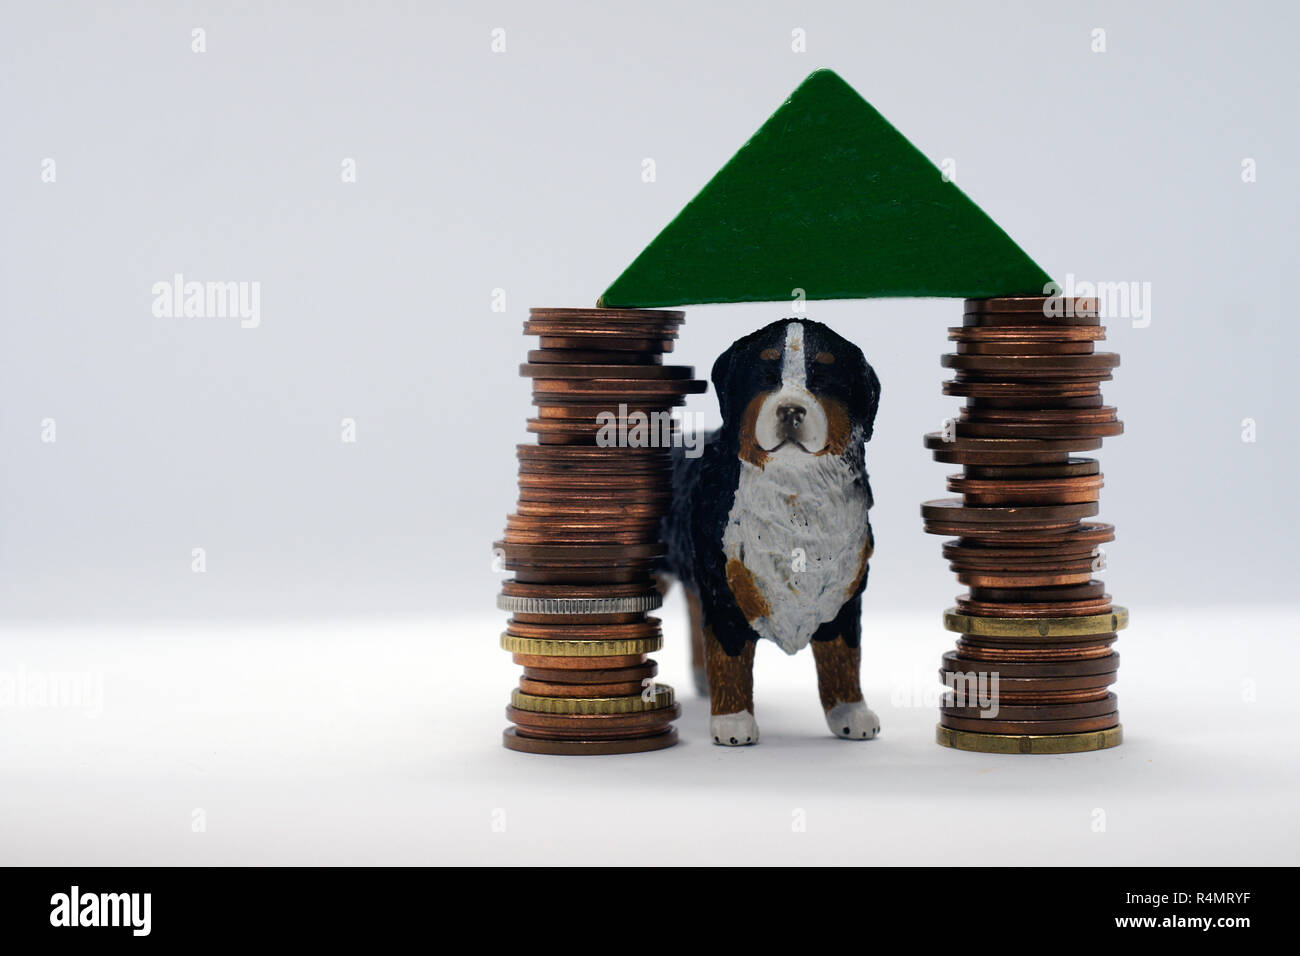 dog in own house based on stack of coins - Stock Image